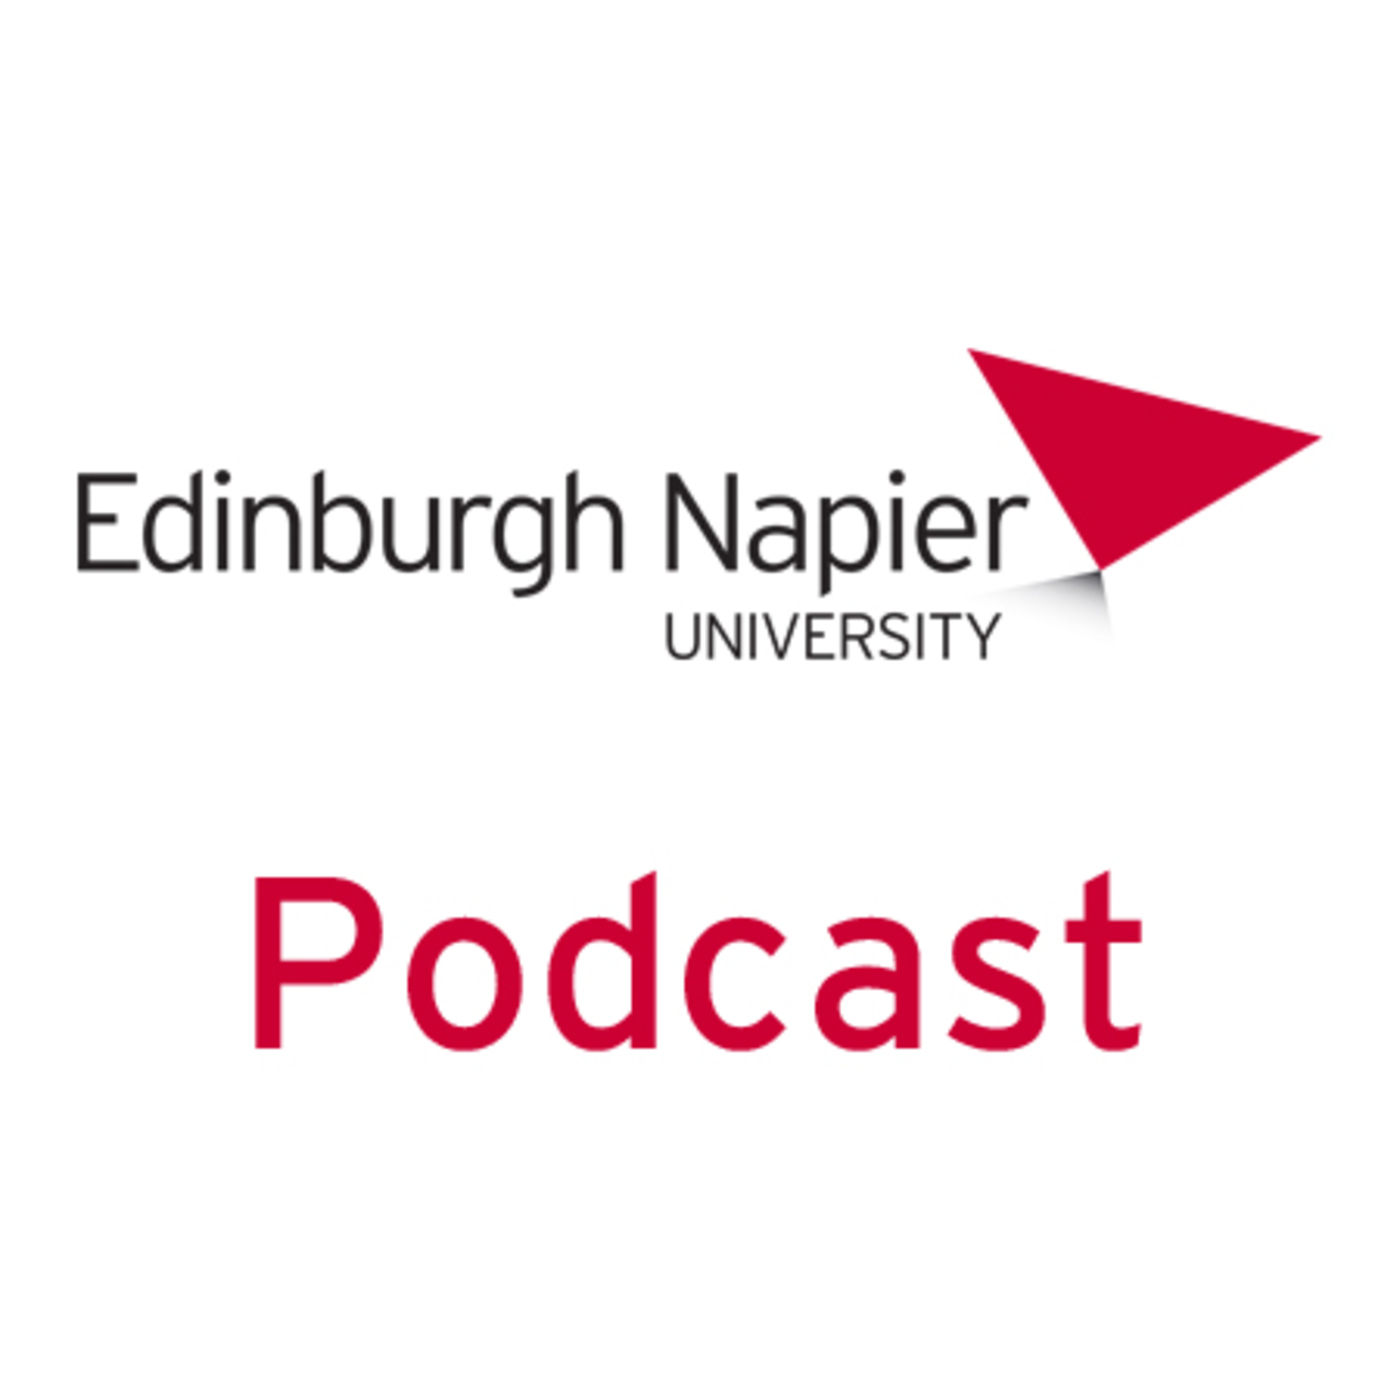 Edinburgh Napier University podcast